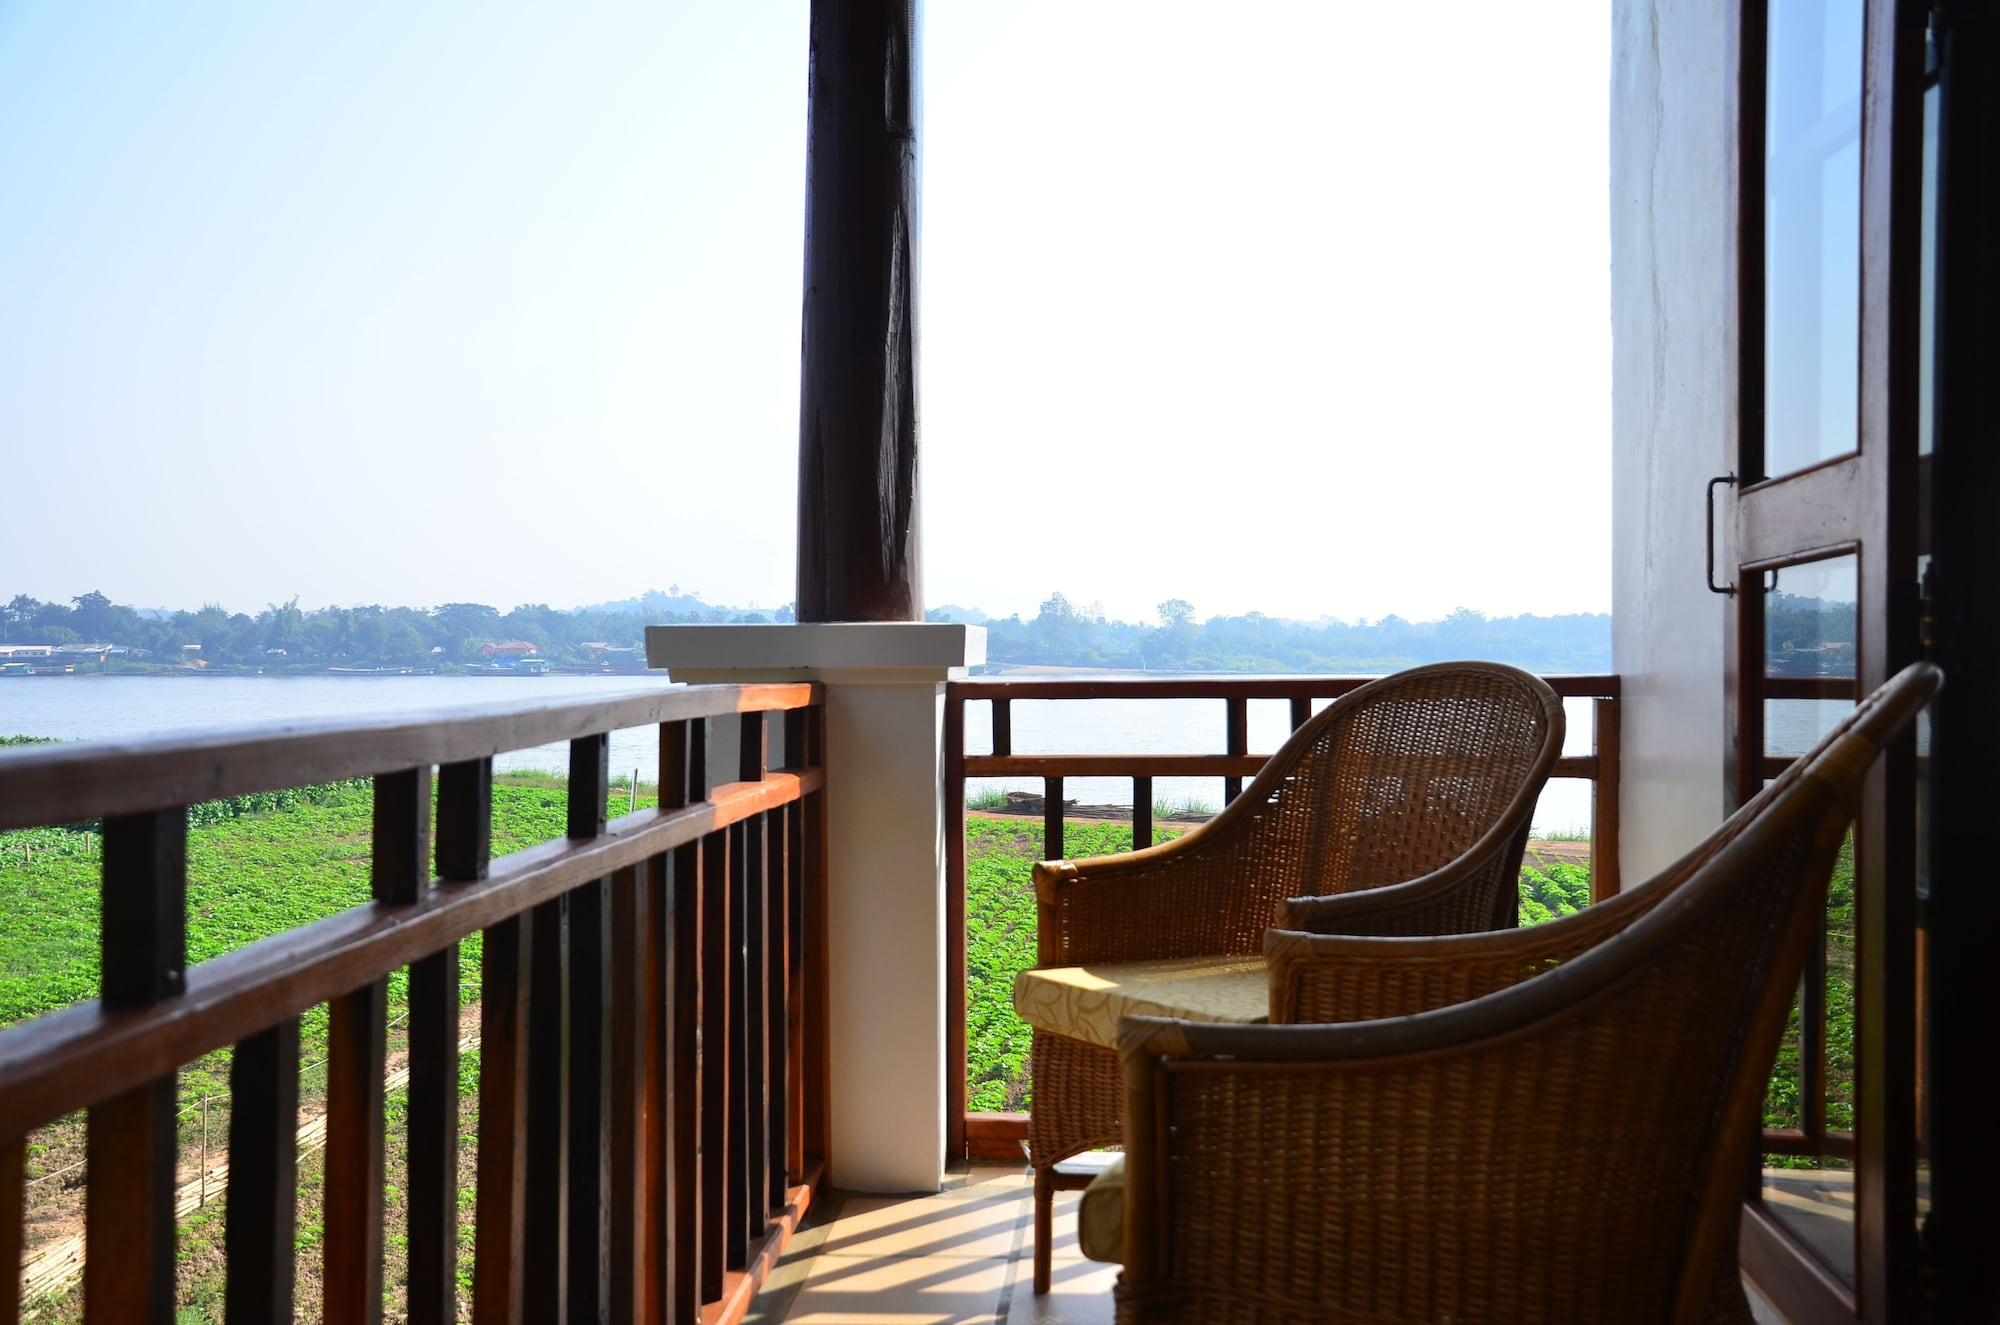 Gin's Maekhong View Resort & Spa, Chiang Saen